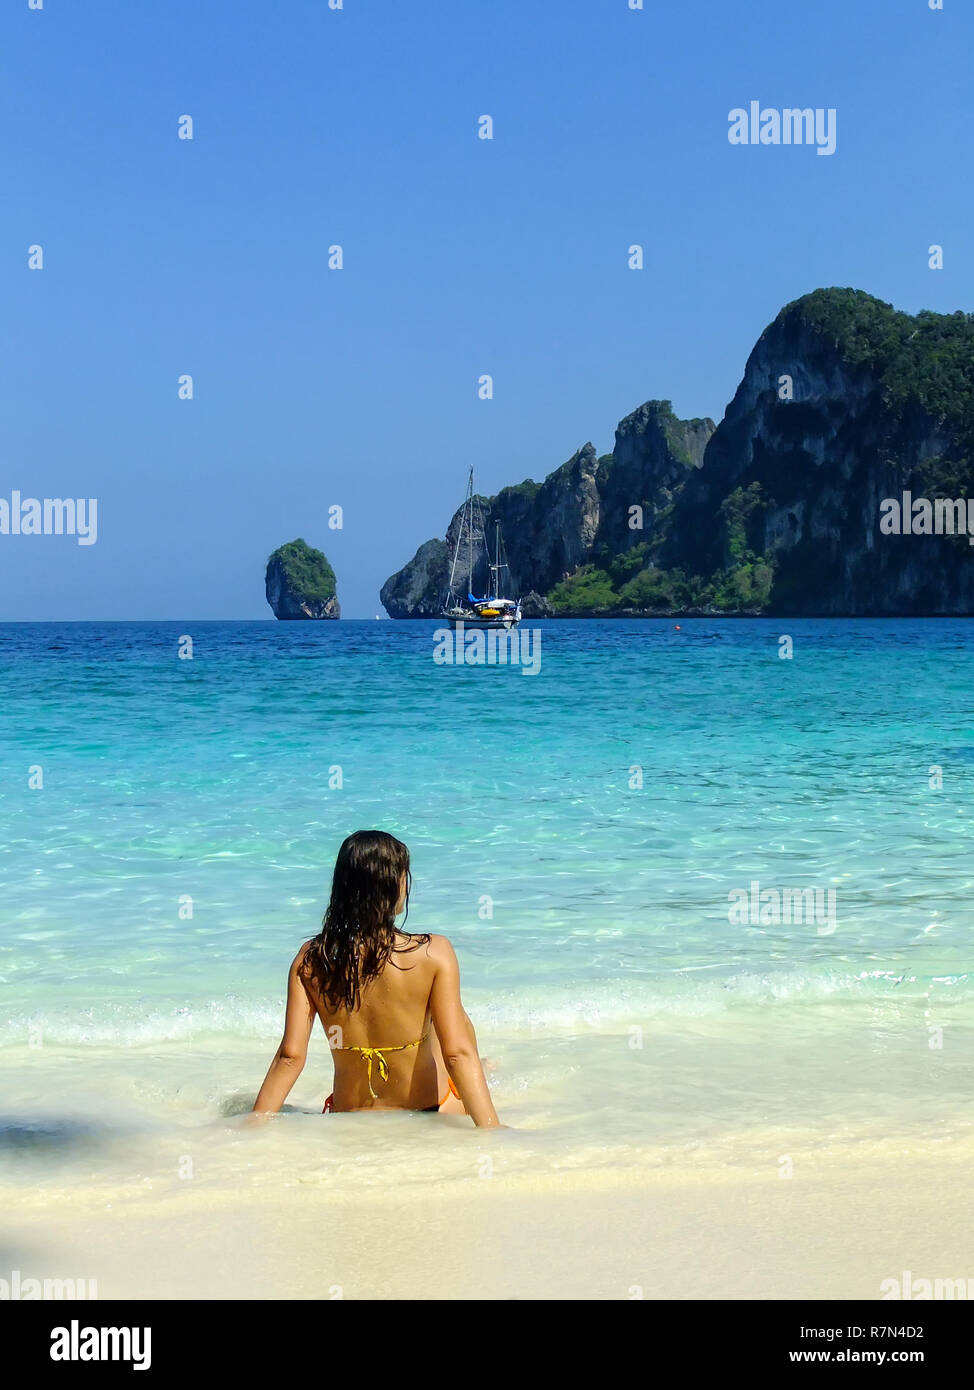 ec126b45e05d Young woman in bikini sitting at Ao Yongkasem beach on Phi Phi Don Island